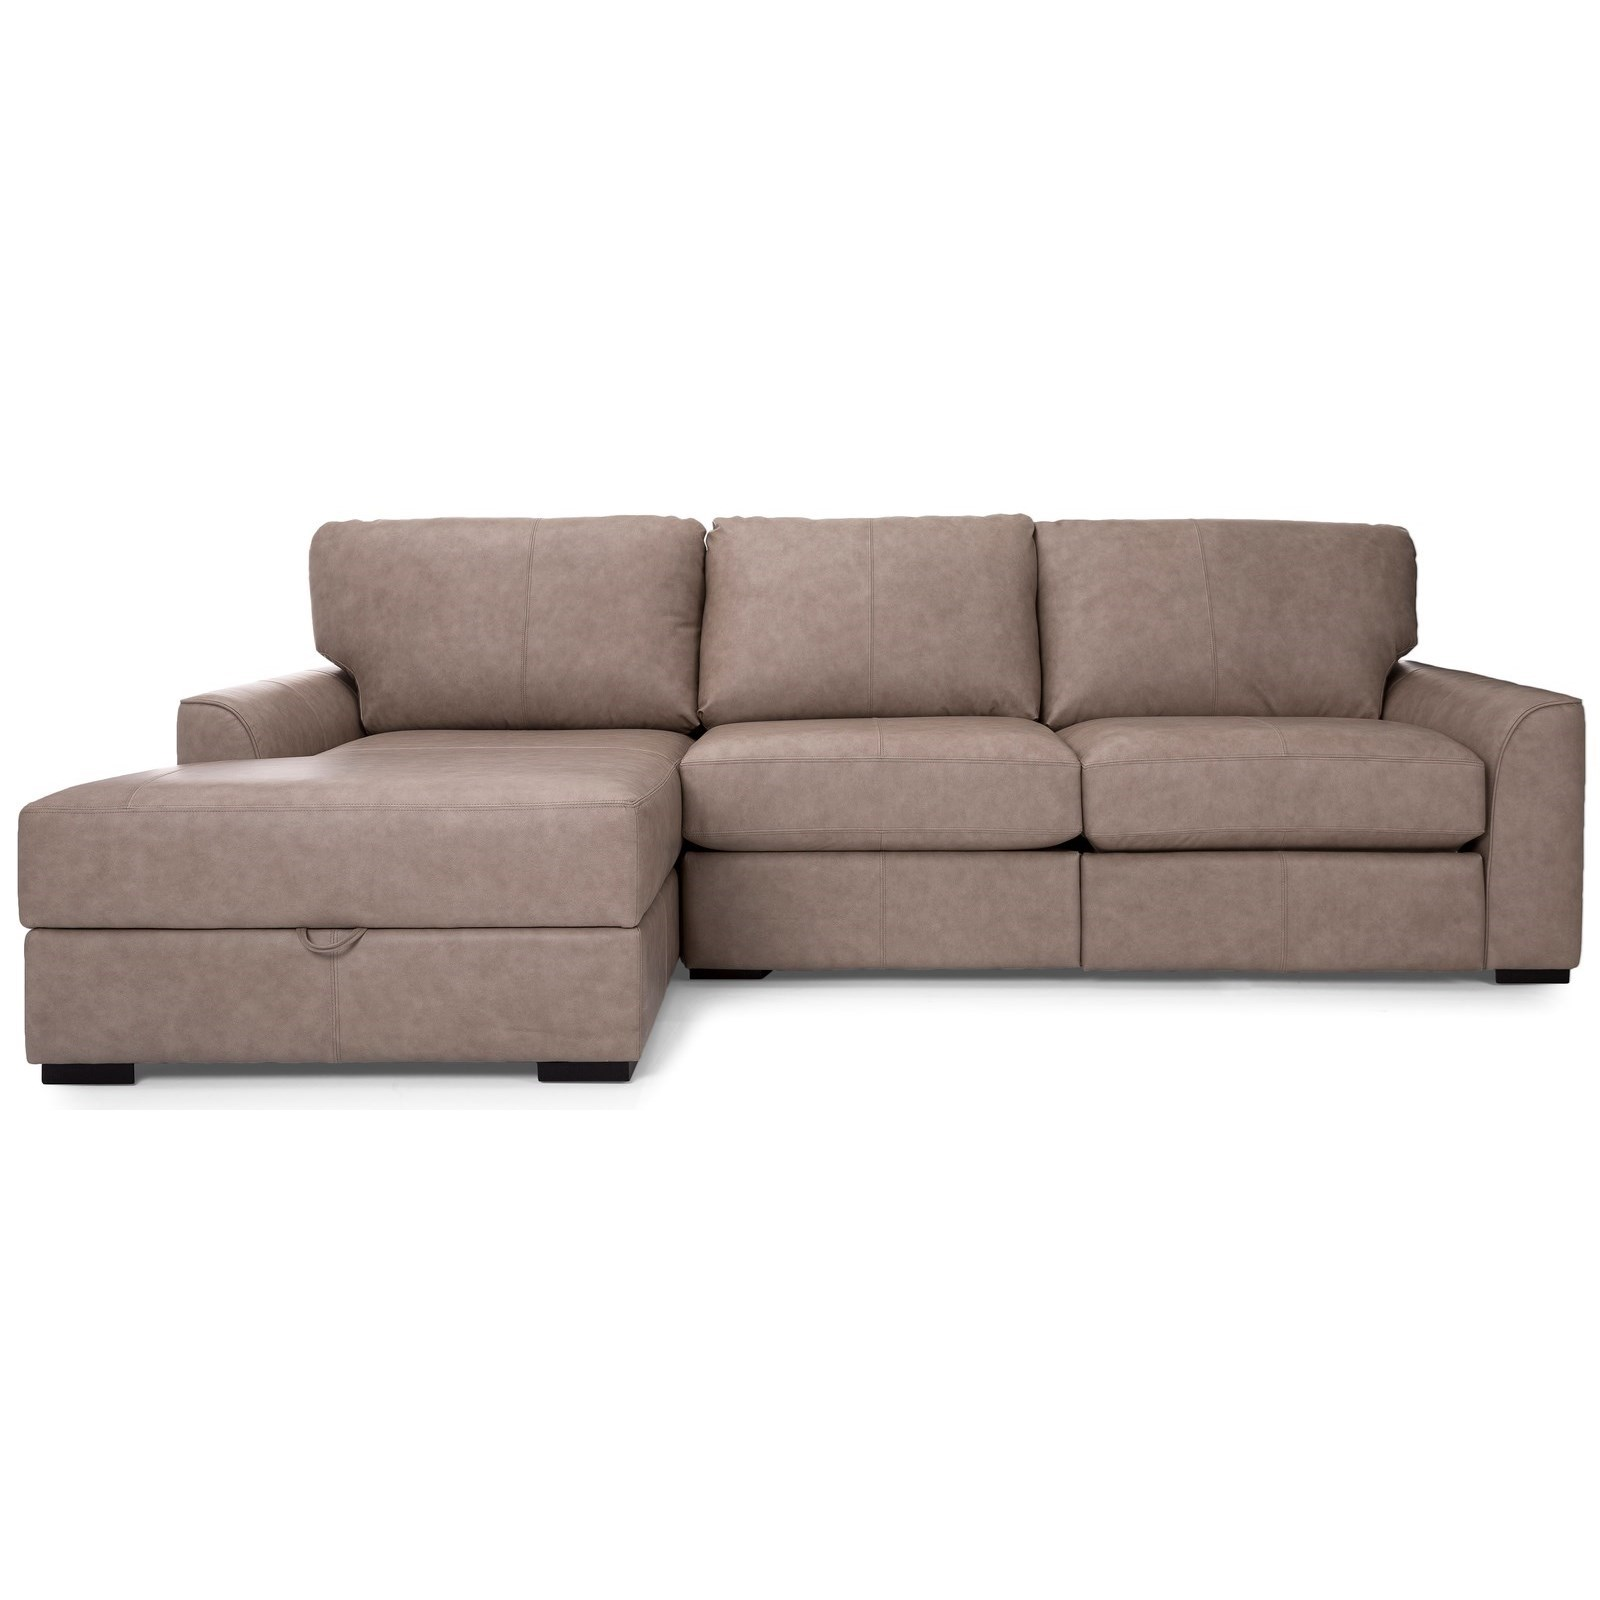 2786 Reclining Sofa Sectional with Chaise by Decor-Rest at Johnny Janosik